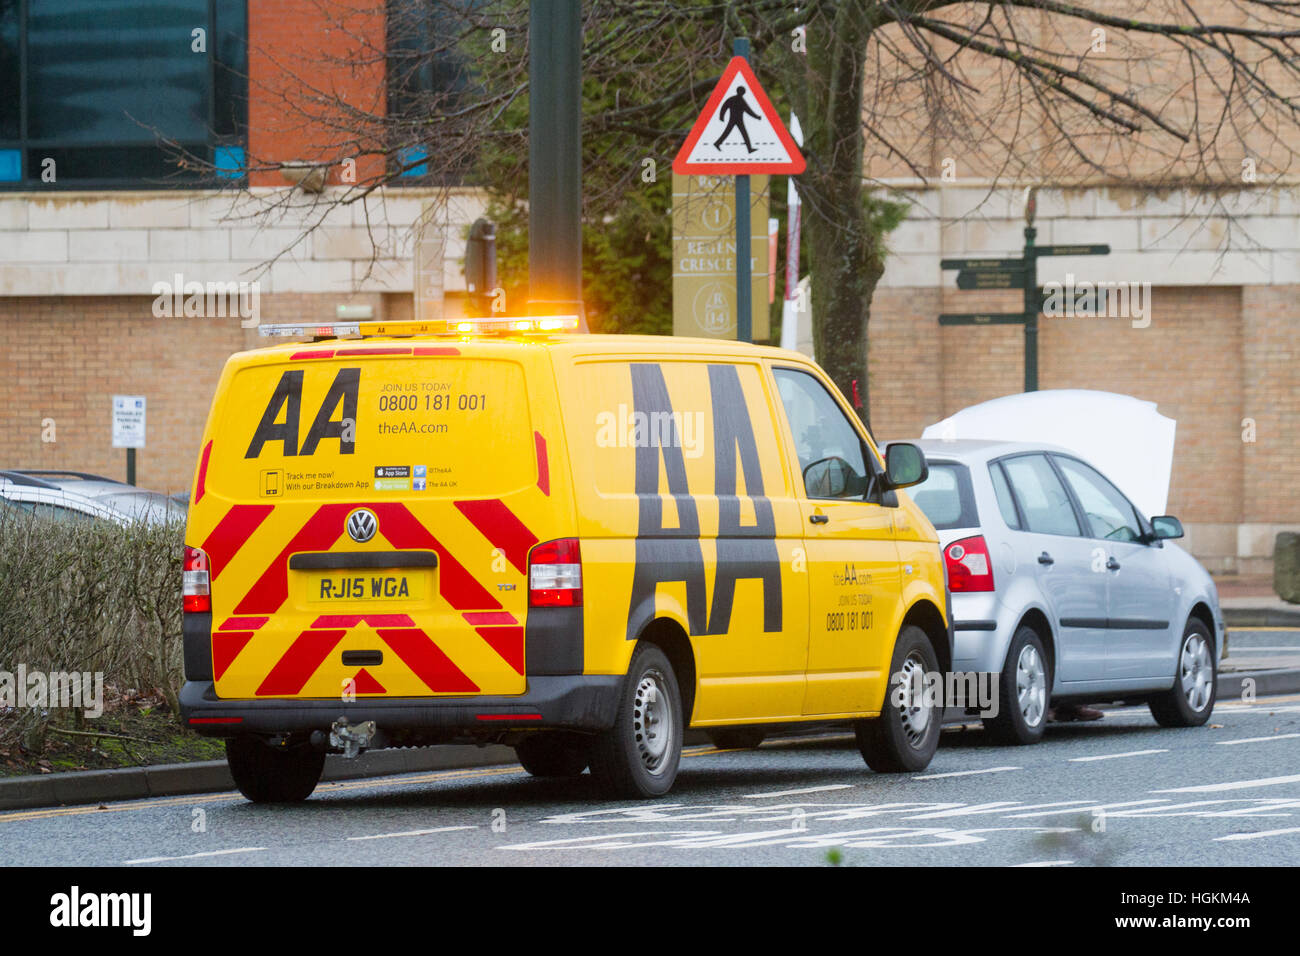 AA Repair to VW Motor vehicle, Manchester, UK - Stock Image